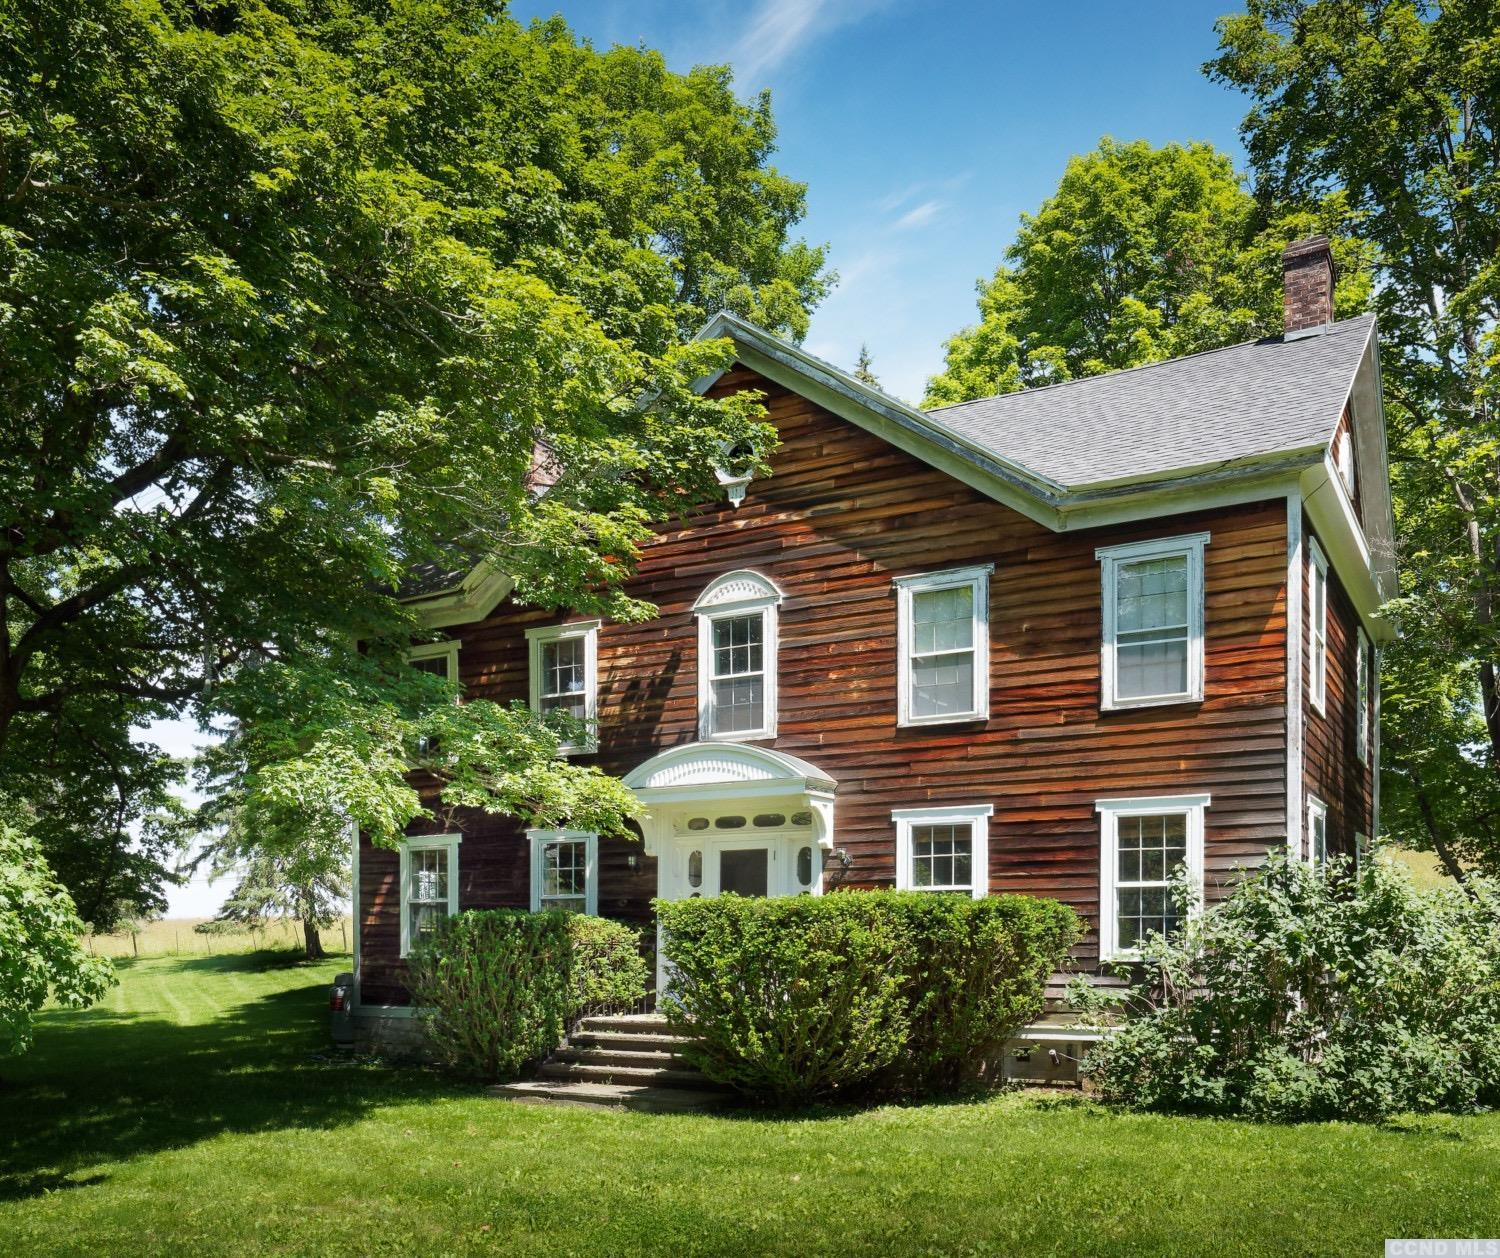 Listing courtesy of HOUSE Hudson Valley Realty